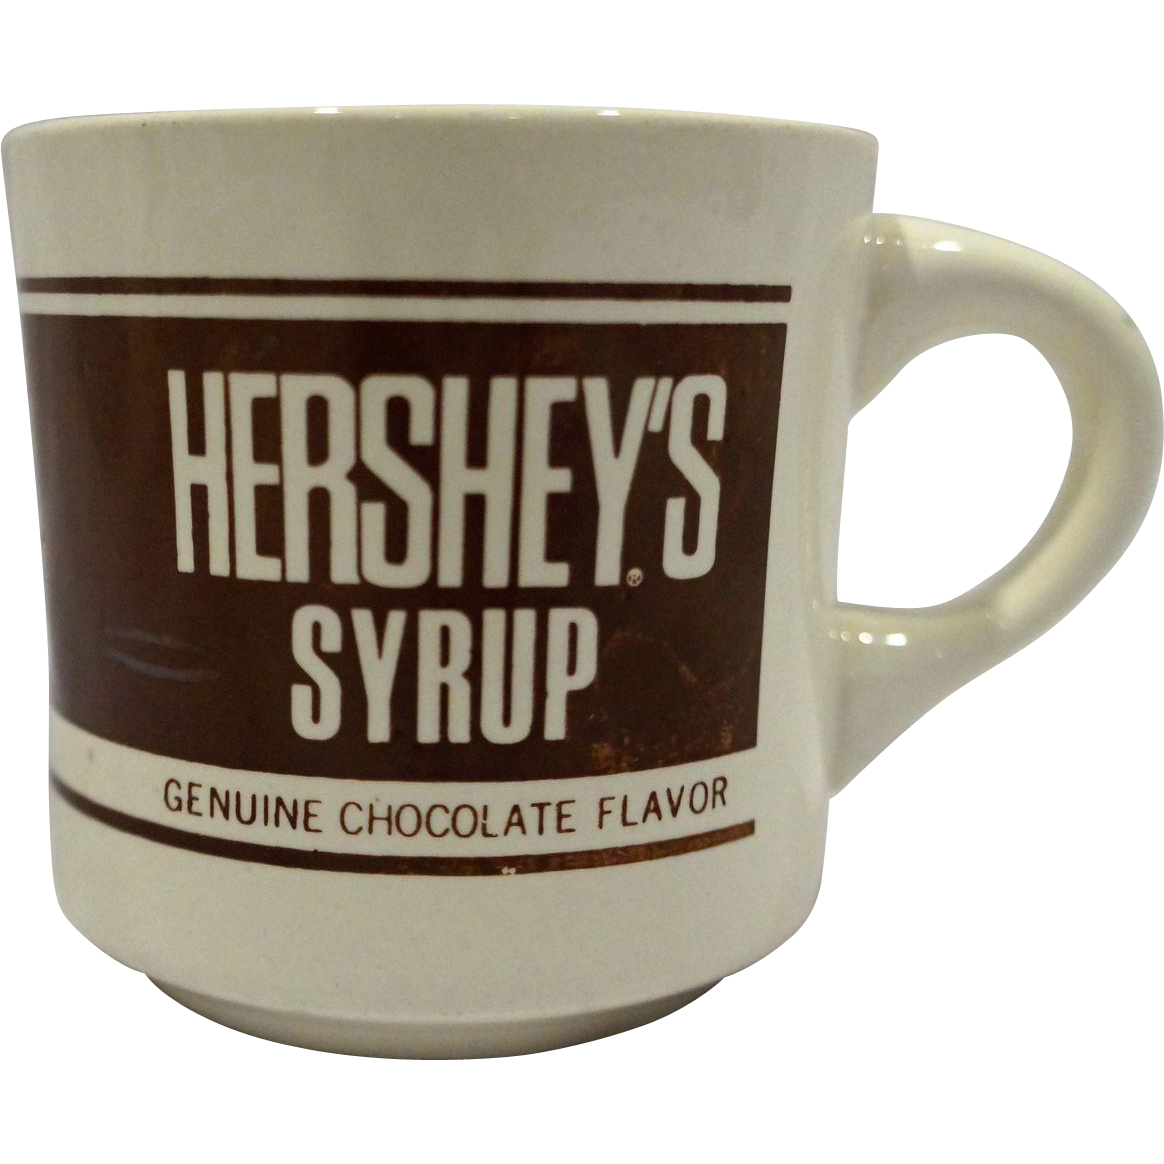 Hersheys Syrup Genuine Chocolate Flavor Advertising Mug